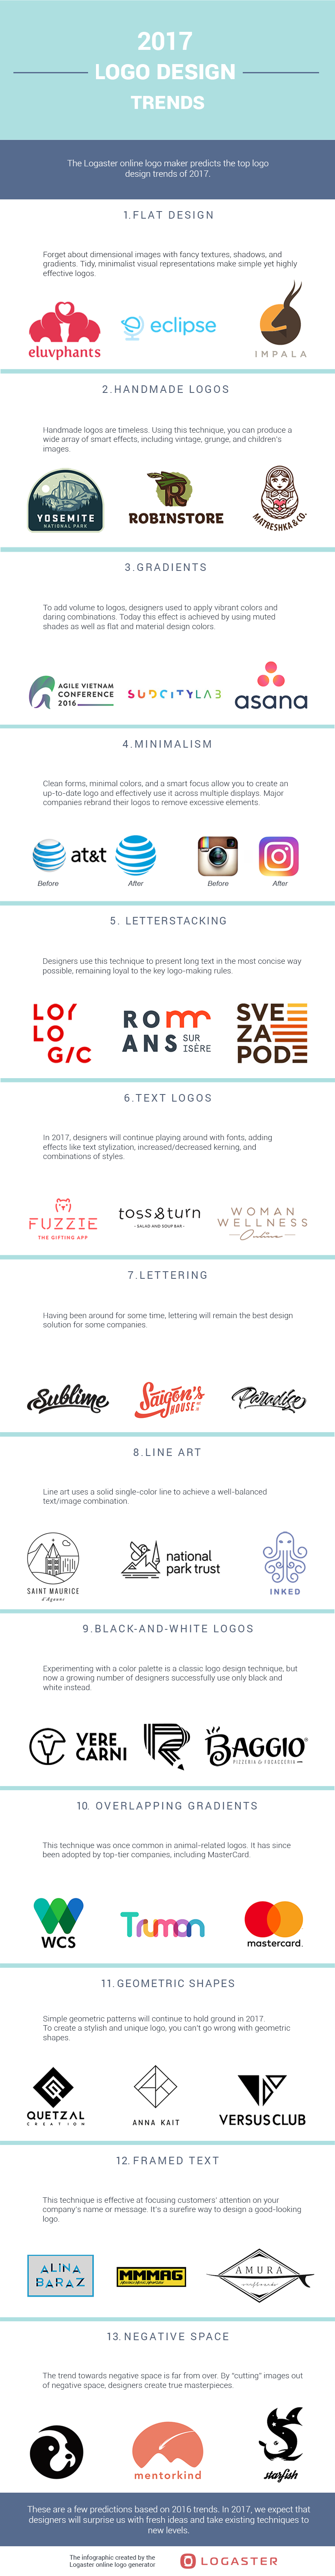 logo-design-trends-infographic.png